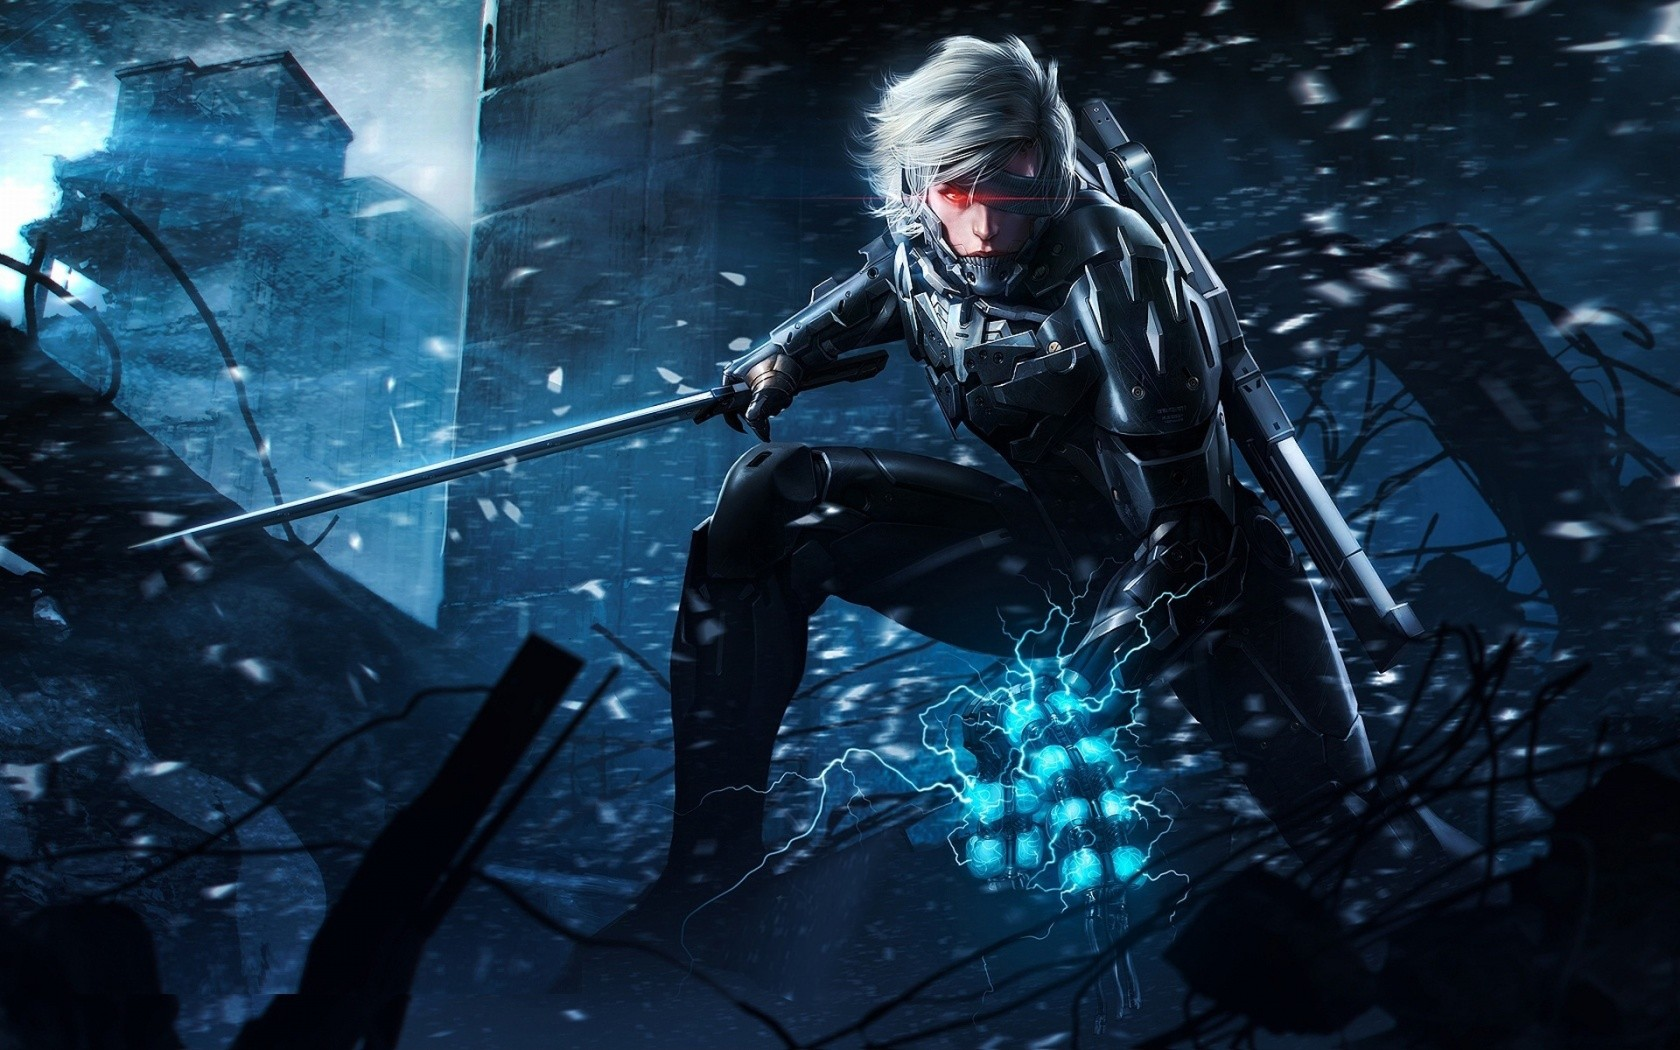 metal gear rising backgrounds A4